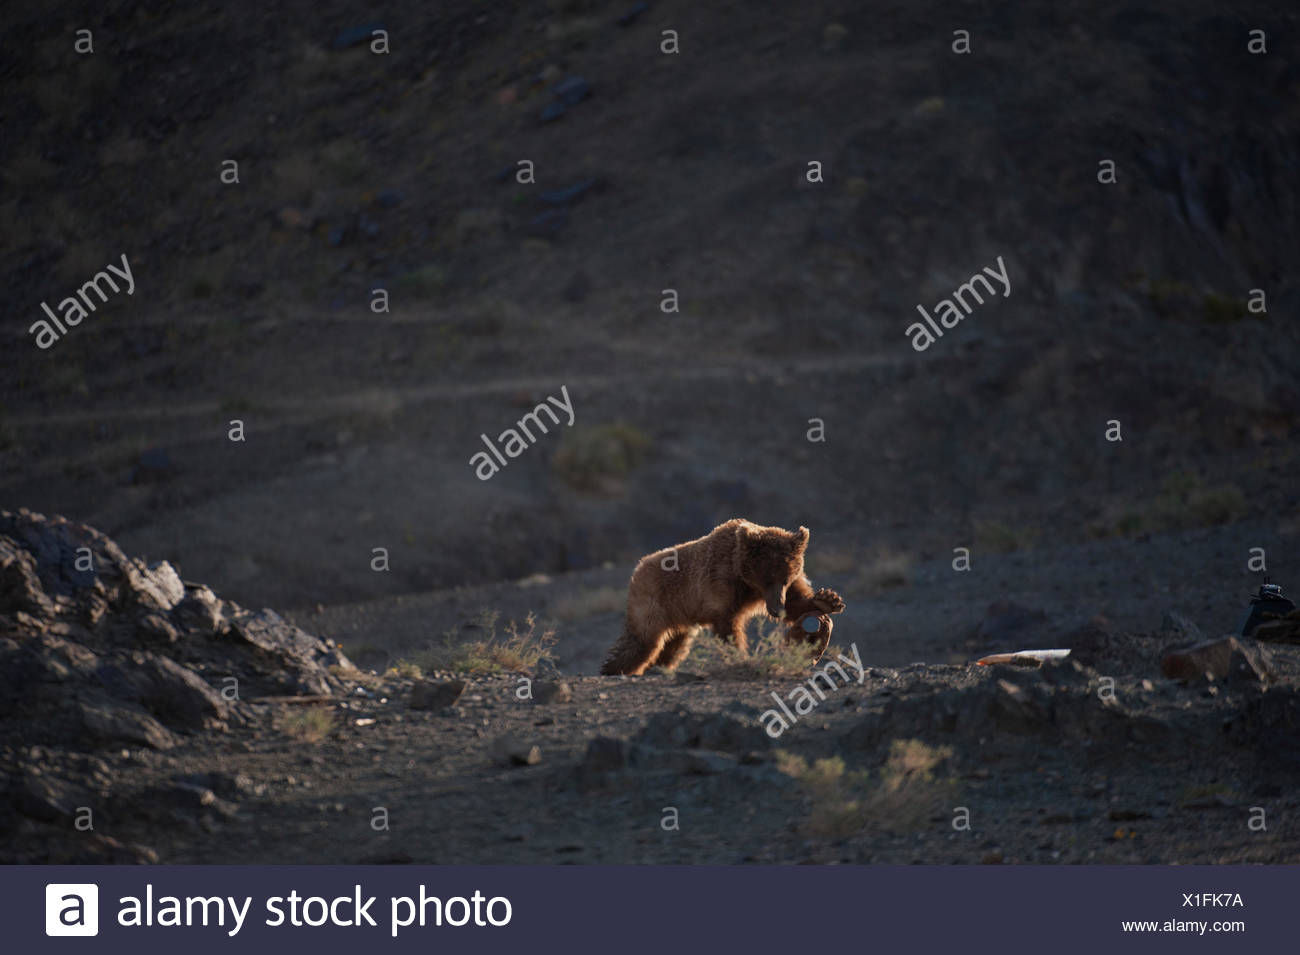 A female Gobi grizzly bear, wearing a GPS tracking collar and ear tag, charges and breaks a remote camera. - Stock Image